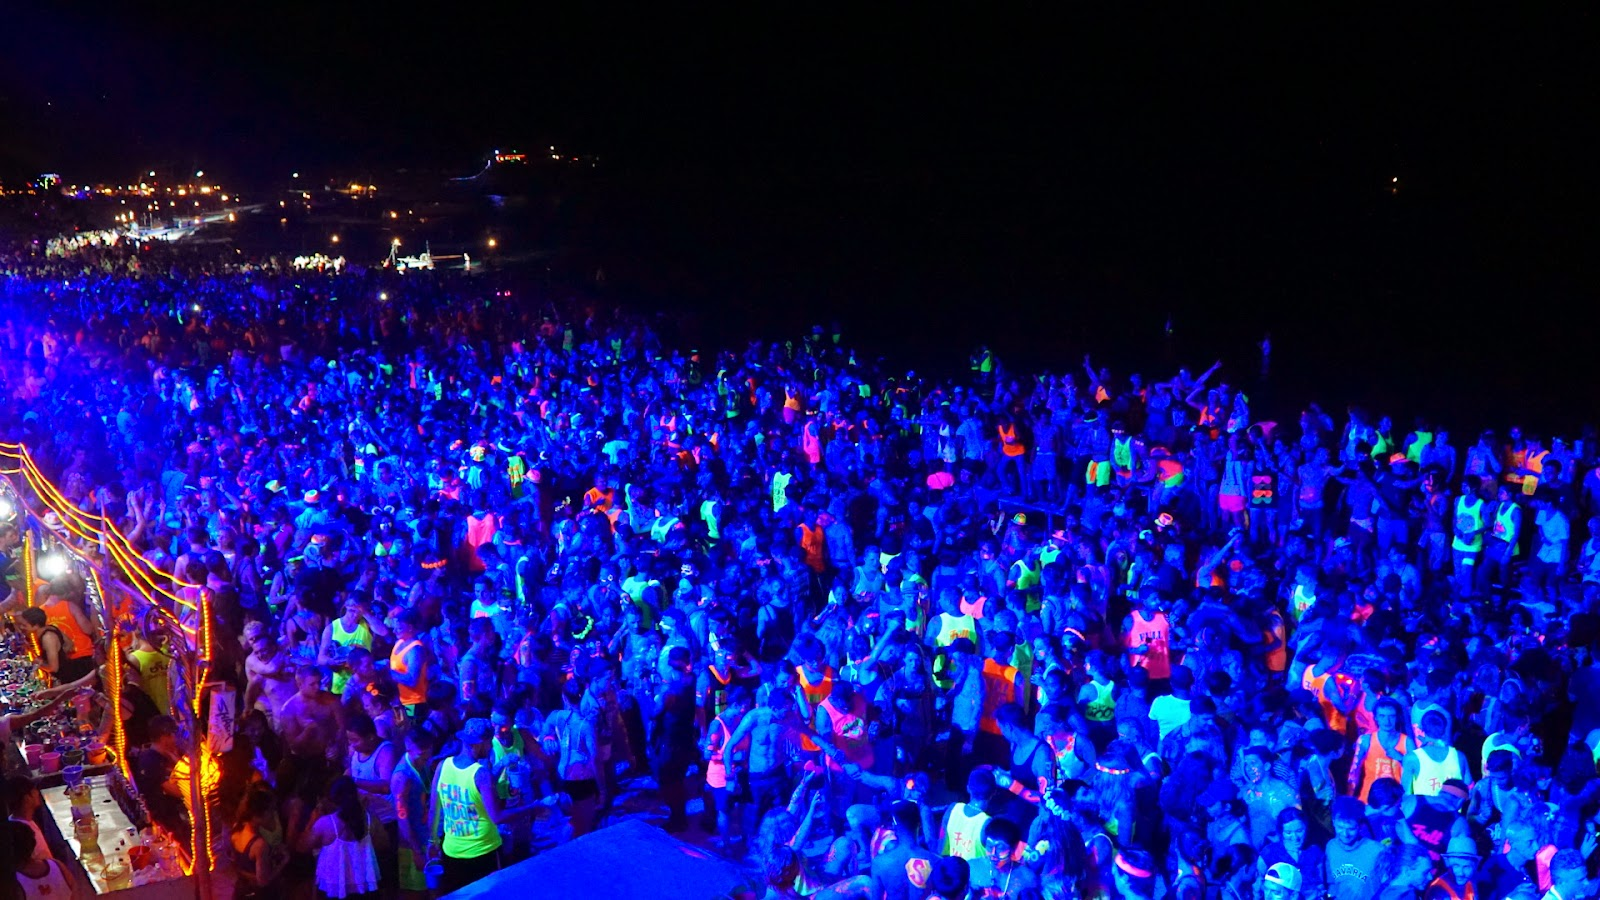 Haad Rin beach becomes increasingly crowded with party goers the longer the night goes on